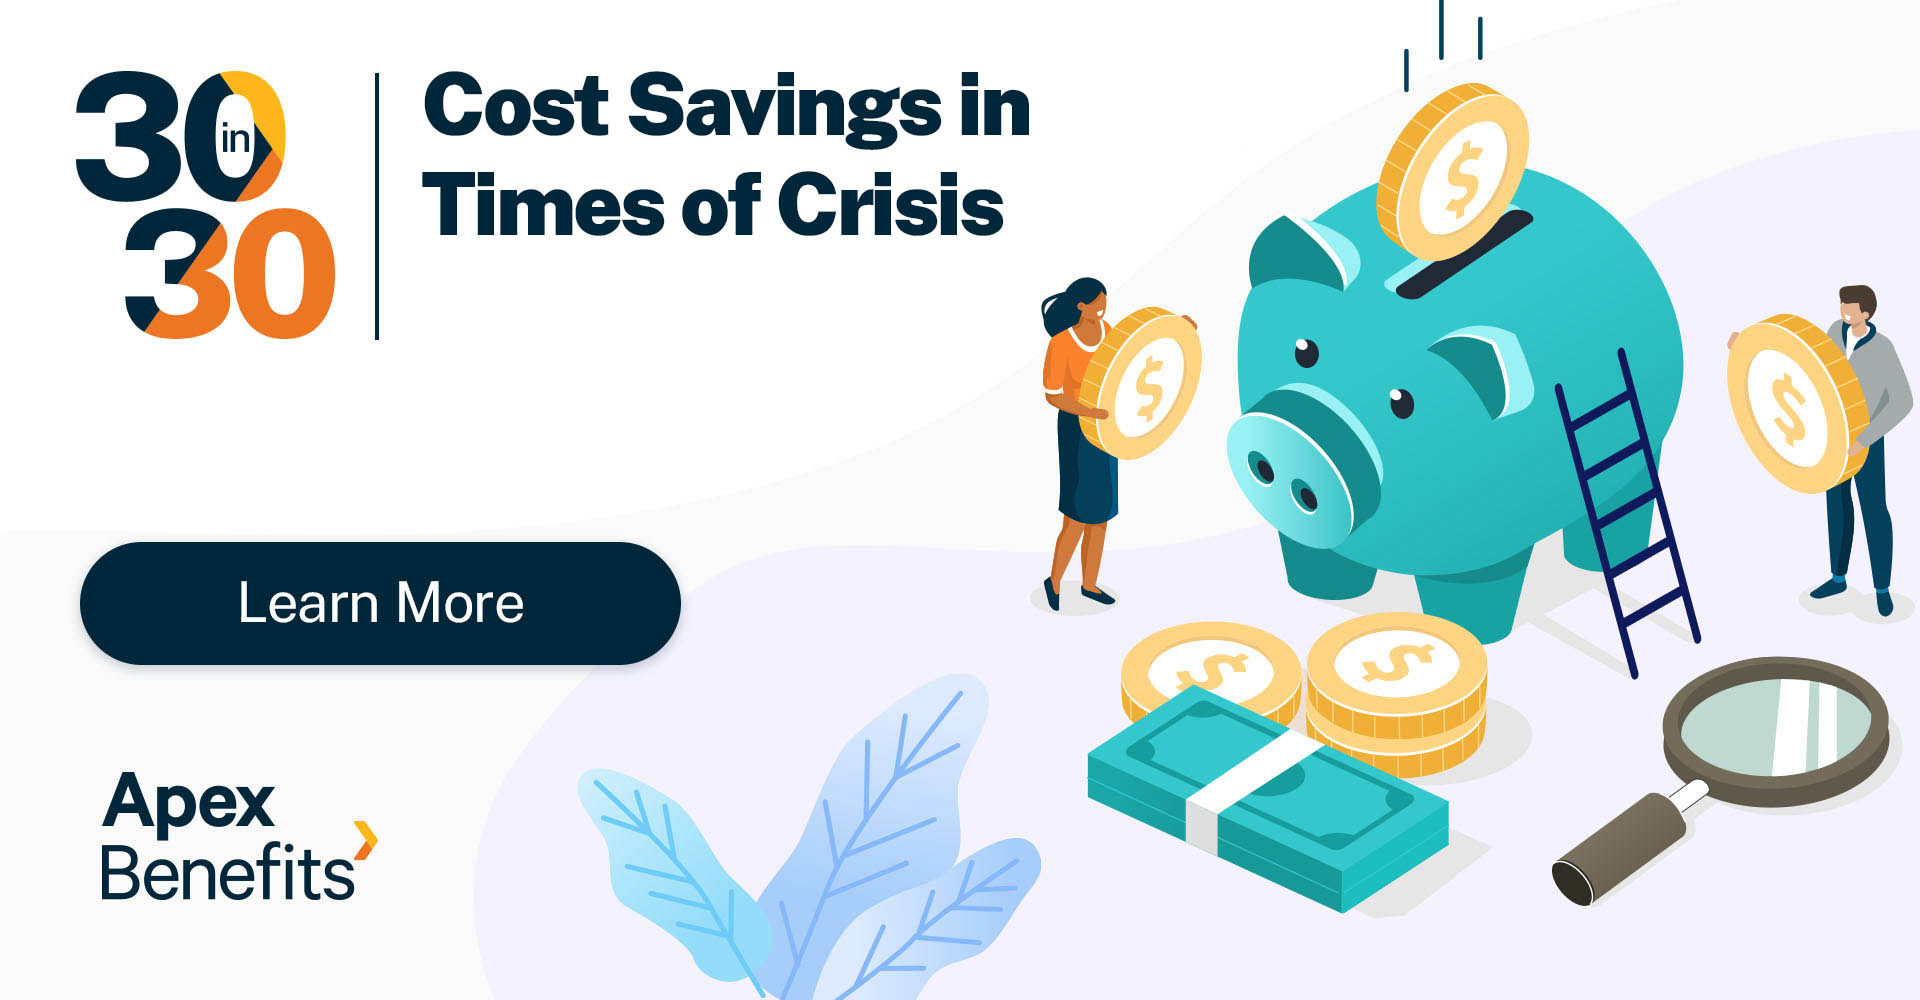 30 in 30: Cost Savings in Times of Crisis Webinar Scheduled for April 23